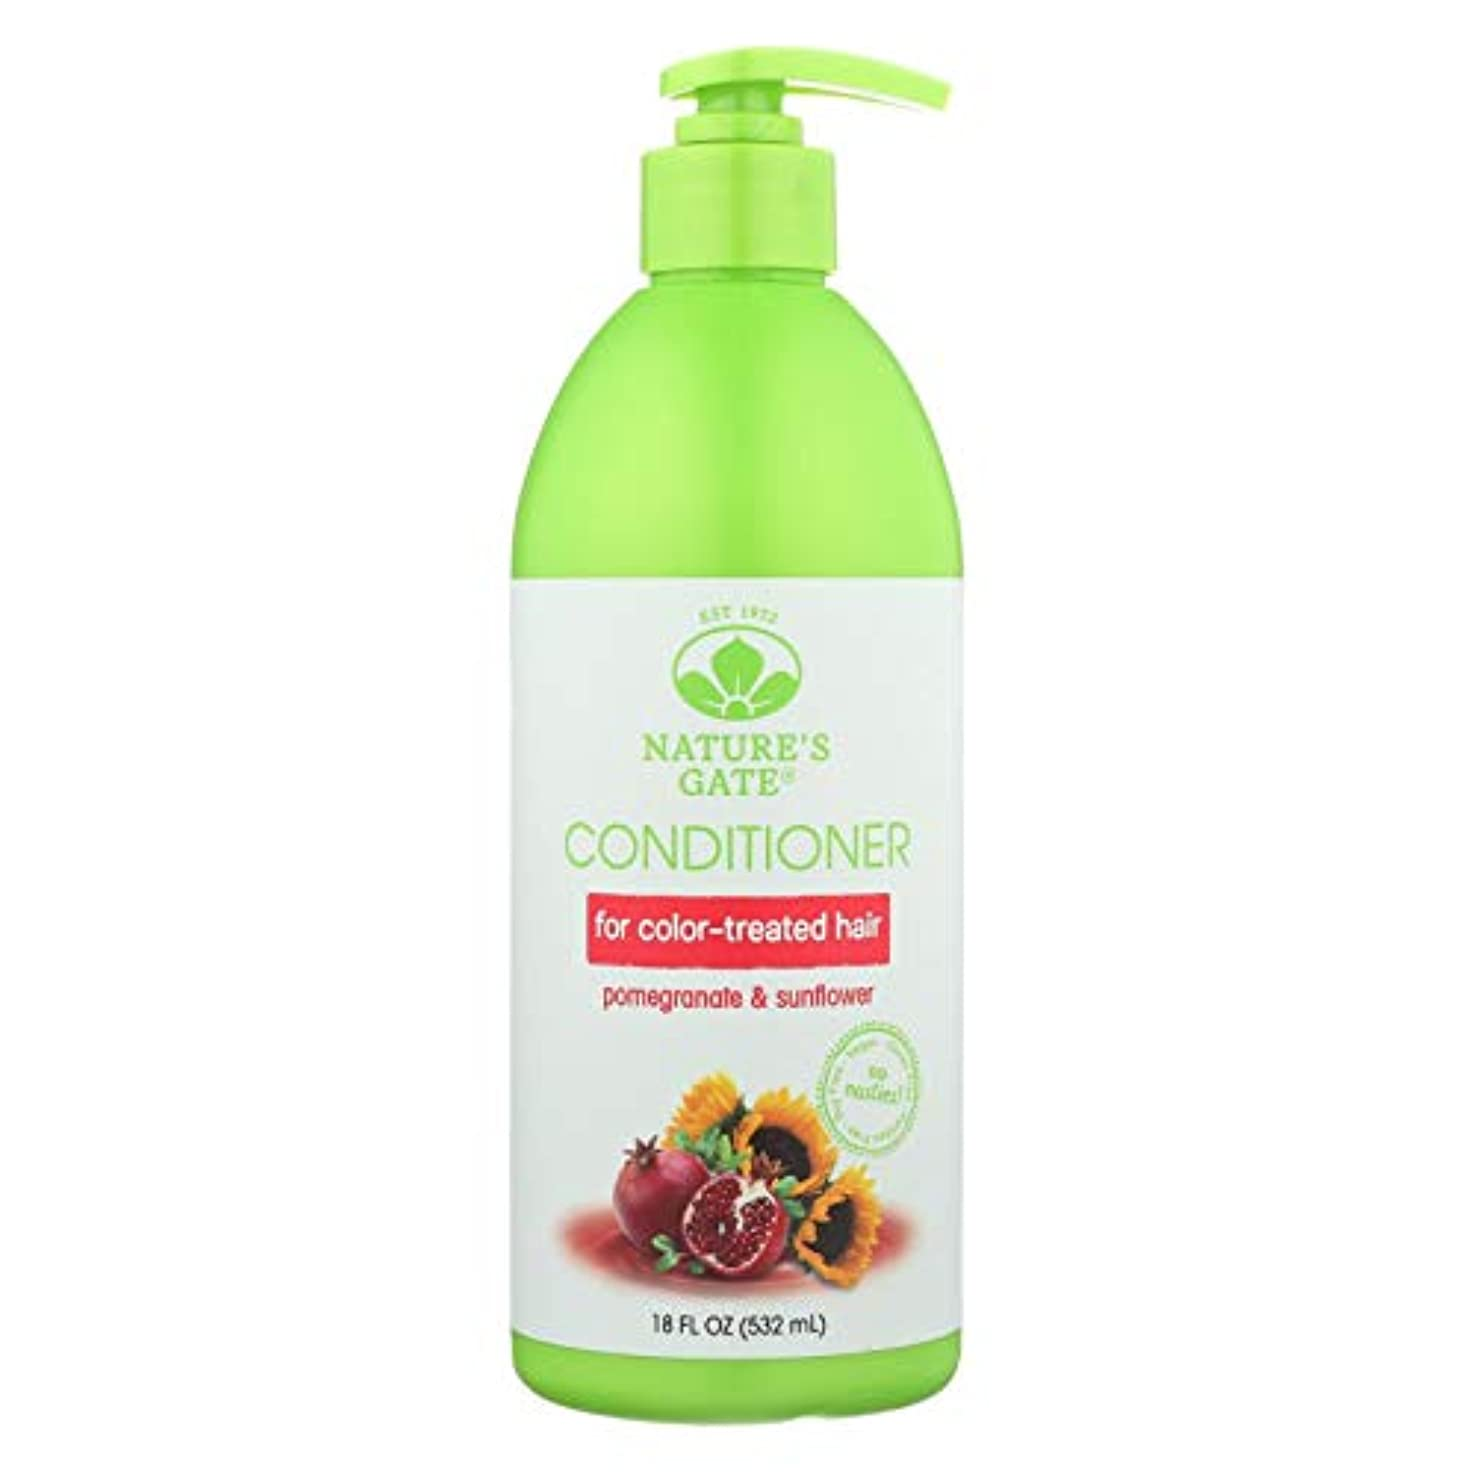 保護スケート居心地の良いNature's Gate, Conditioner, Hair Defense, Pomegranate Sunflower, 18 fl oz (532 ml)